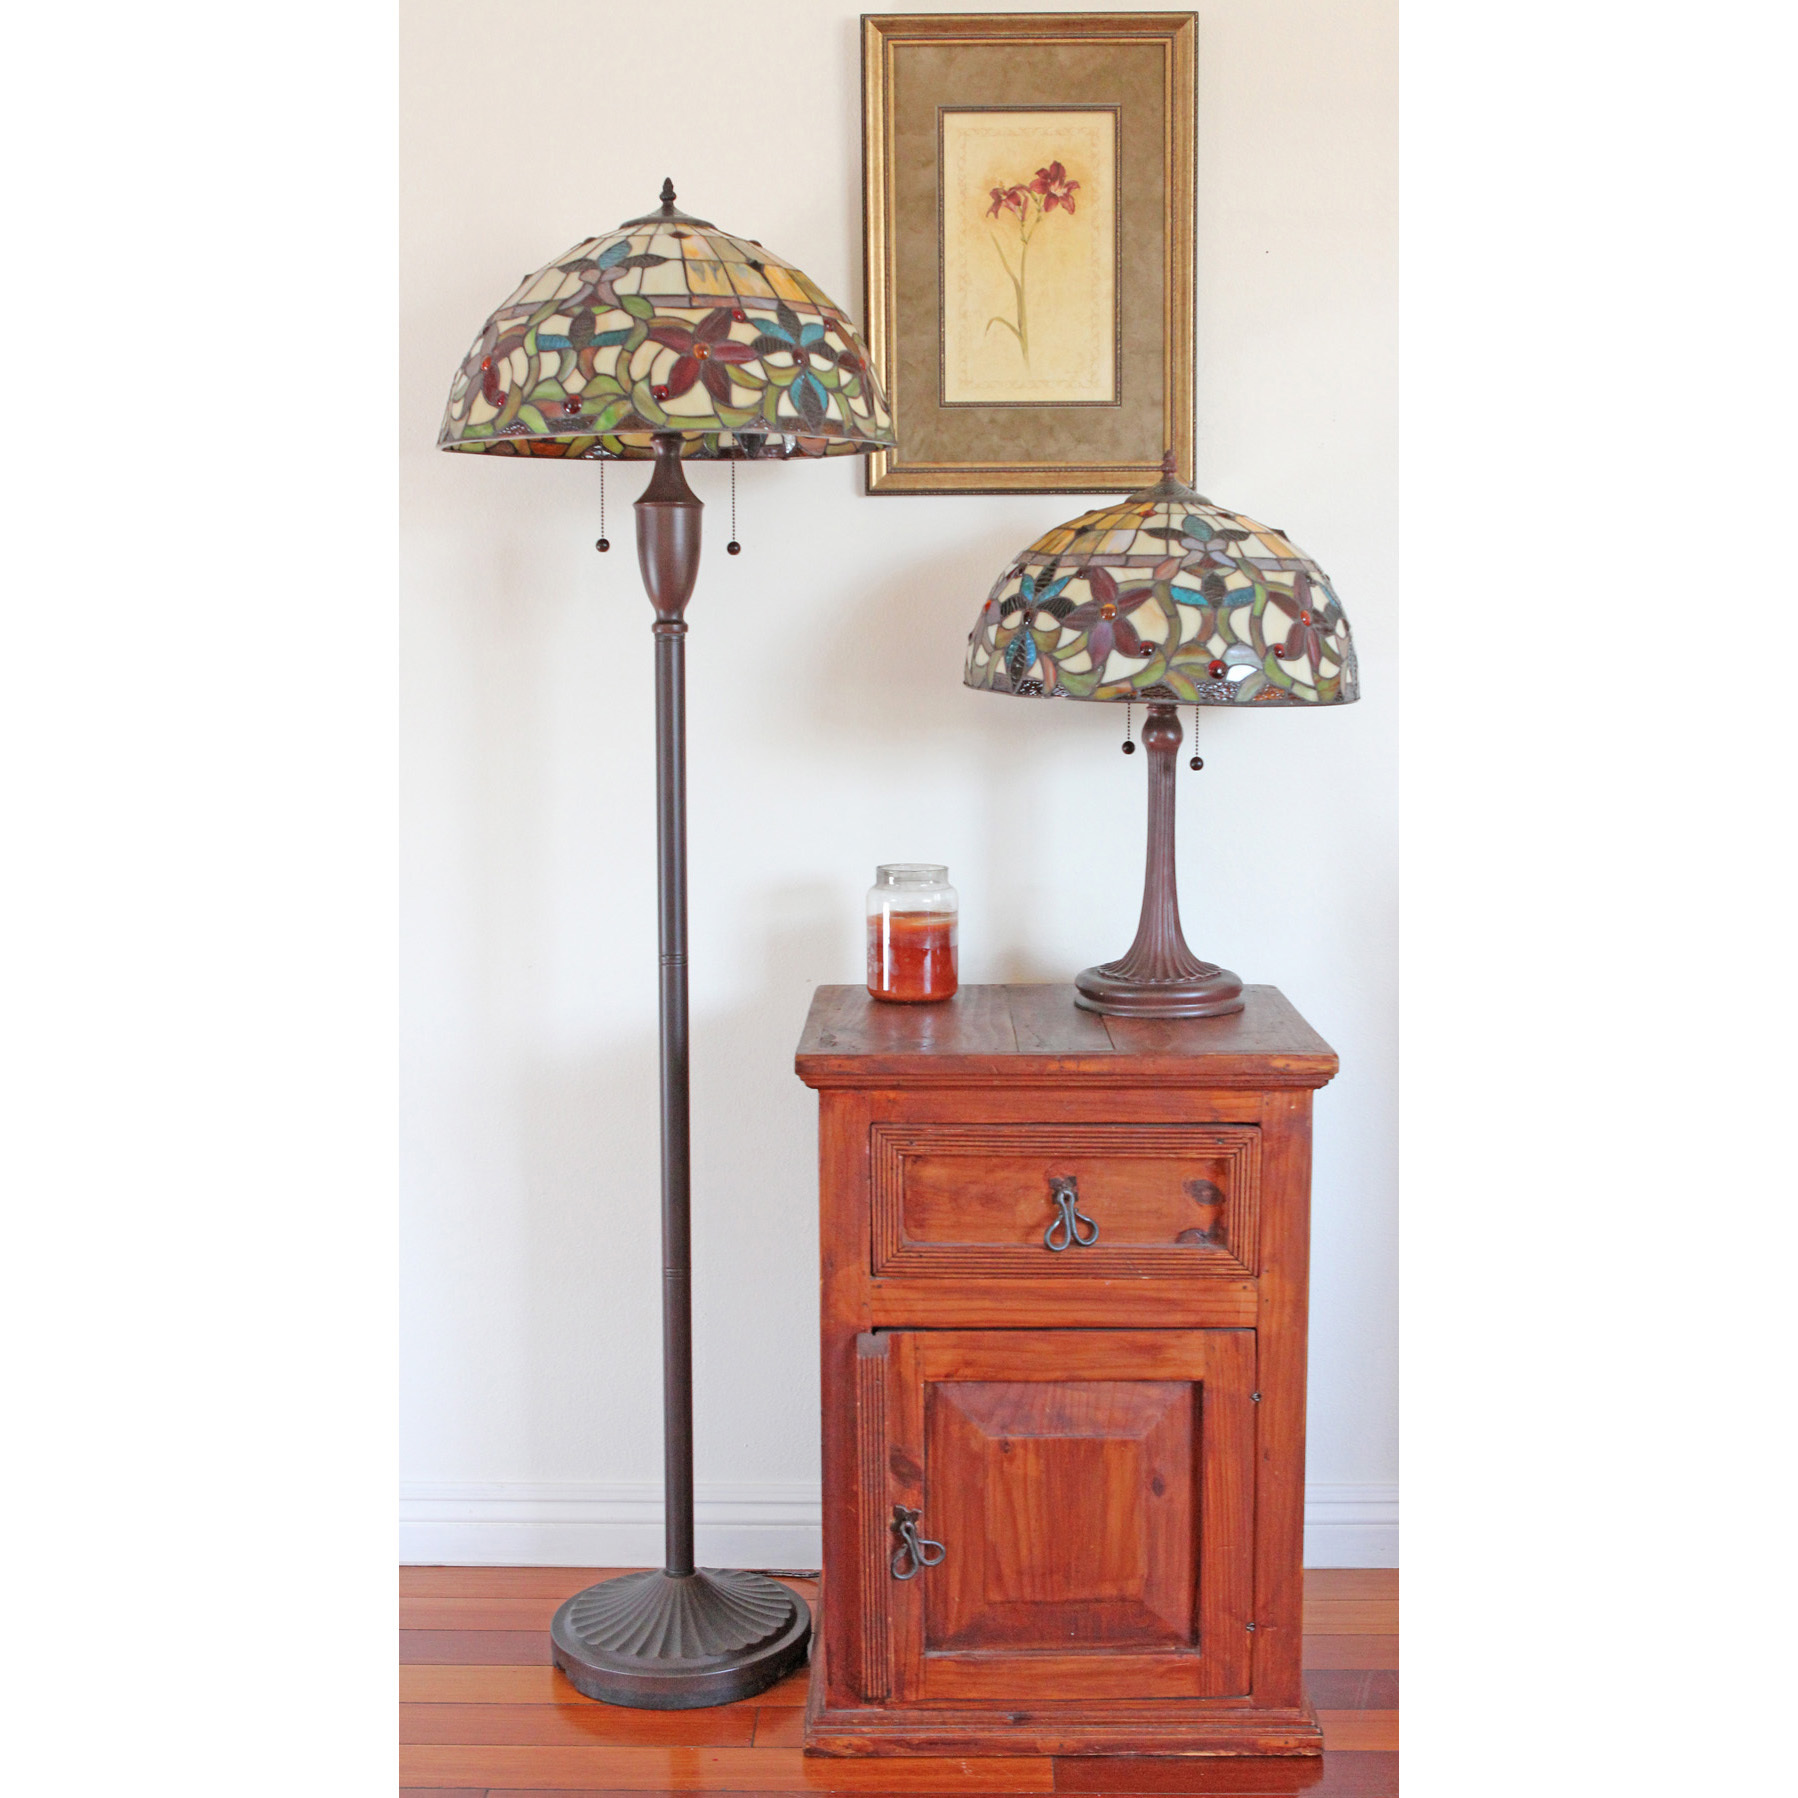 lighting ideas antique tiffany style floor lamps near small wooden table also tiny lamp under framed painting varnished hadwood flooring accent coffee kijiji tall metal wrought